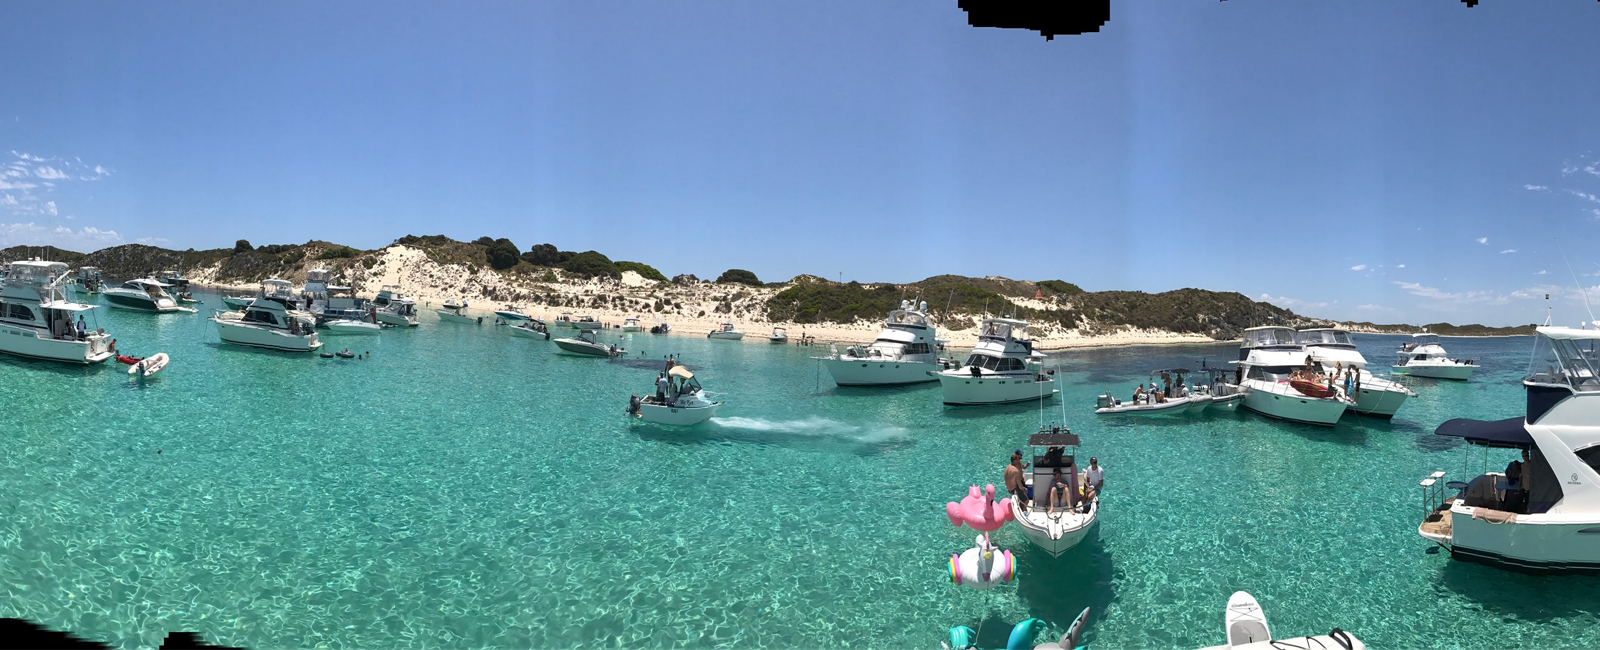 DARLING ISABELLE-boat-charter-hire-panormic-shot-rottnest-island